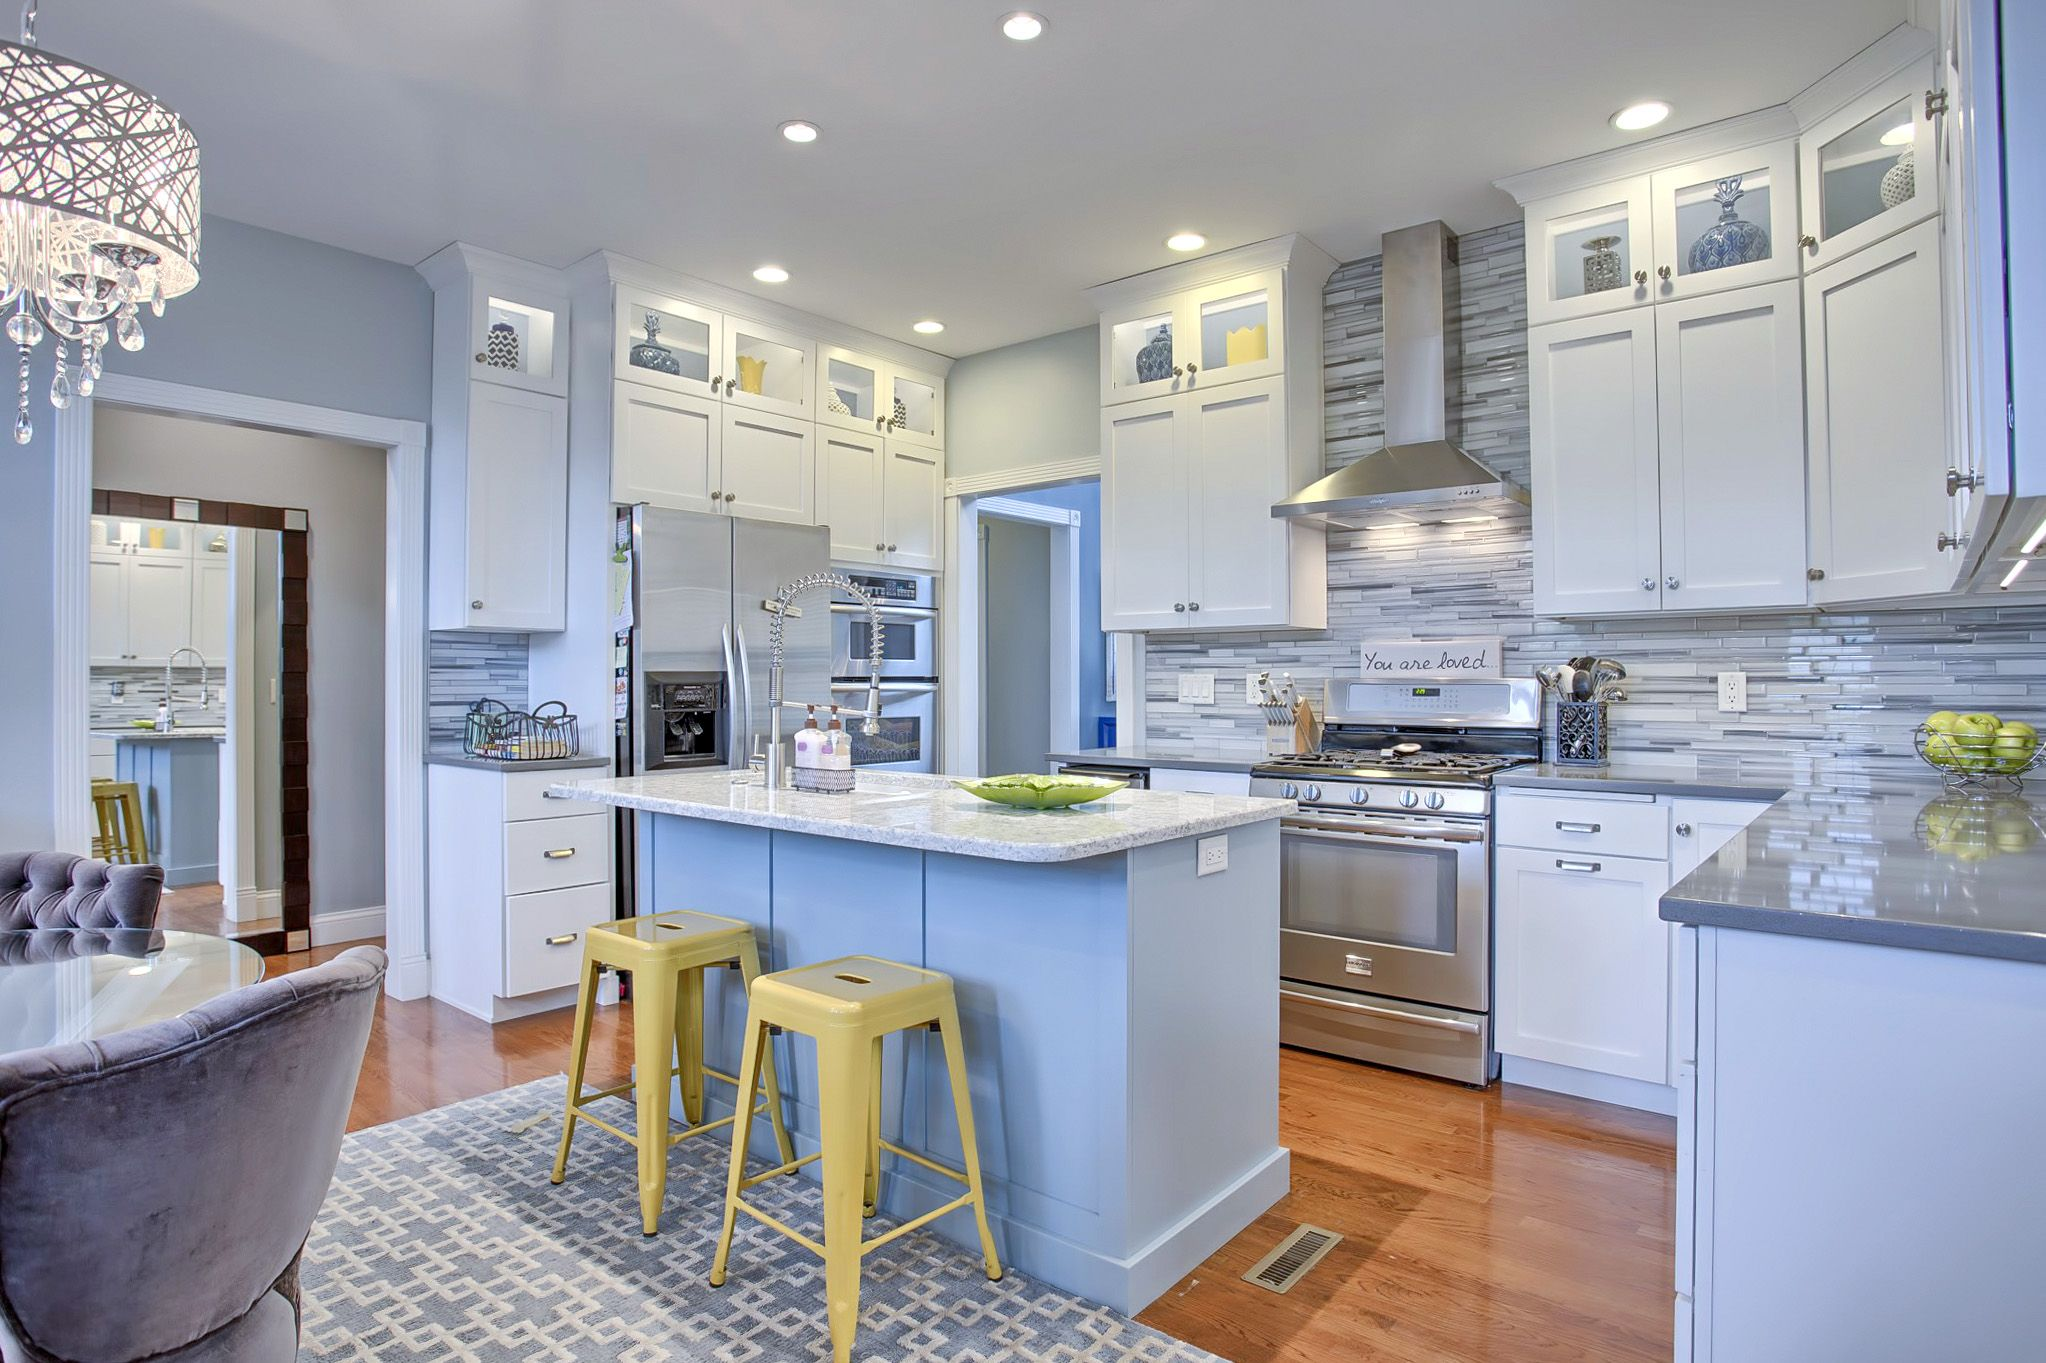 Look2 Photo Gallery - 2206 Strand - My cozy kitchen - Laura D. S. ...